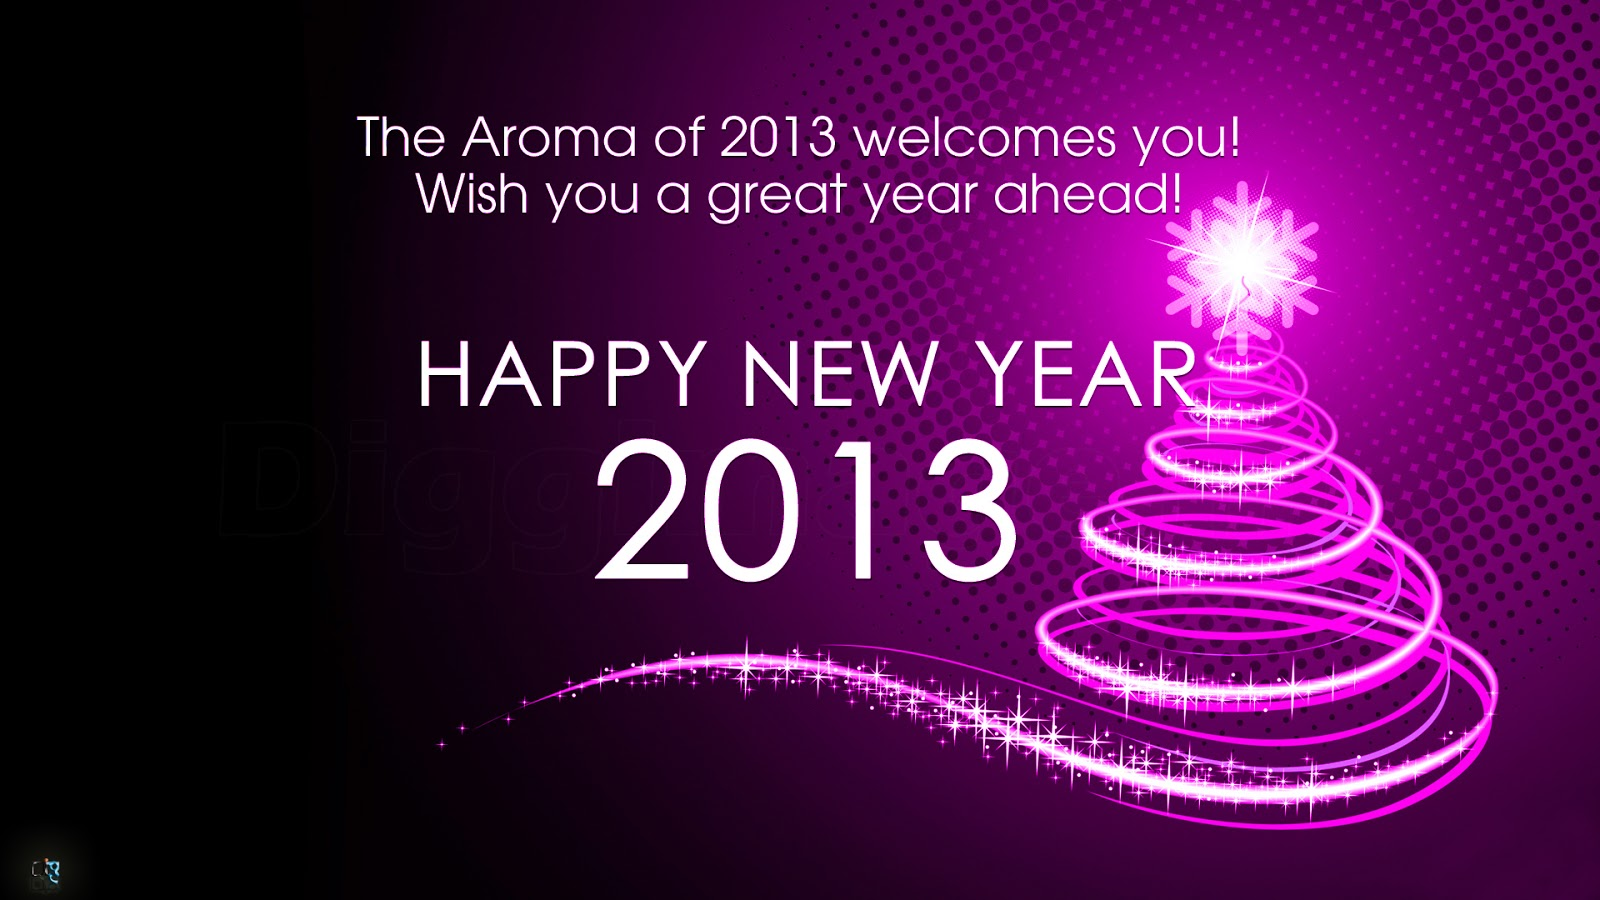 2013 welcomes you wishing you a great year ahead happy new year 2013